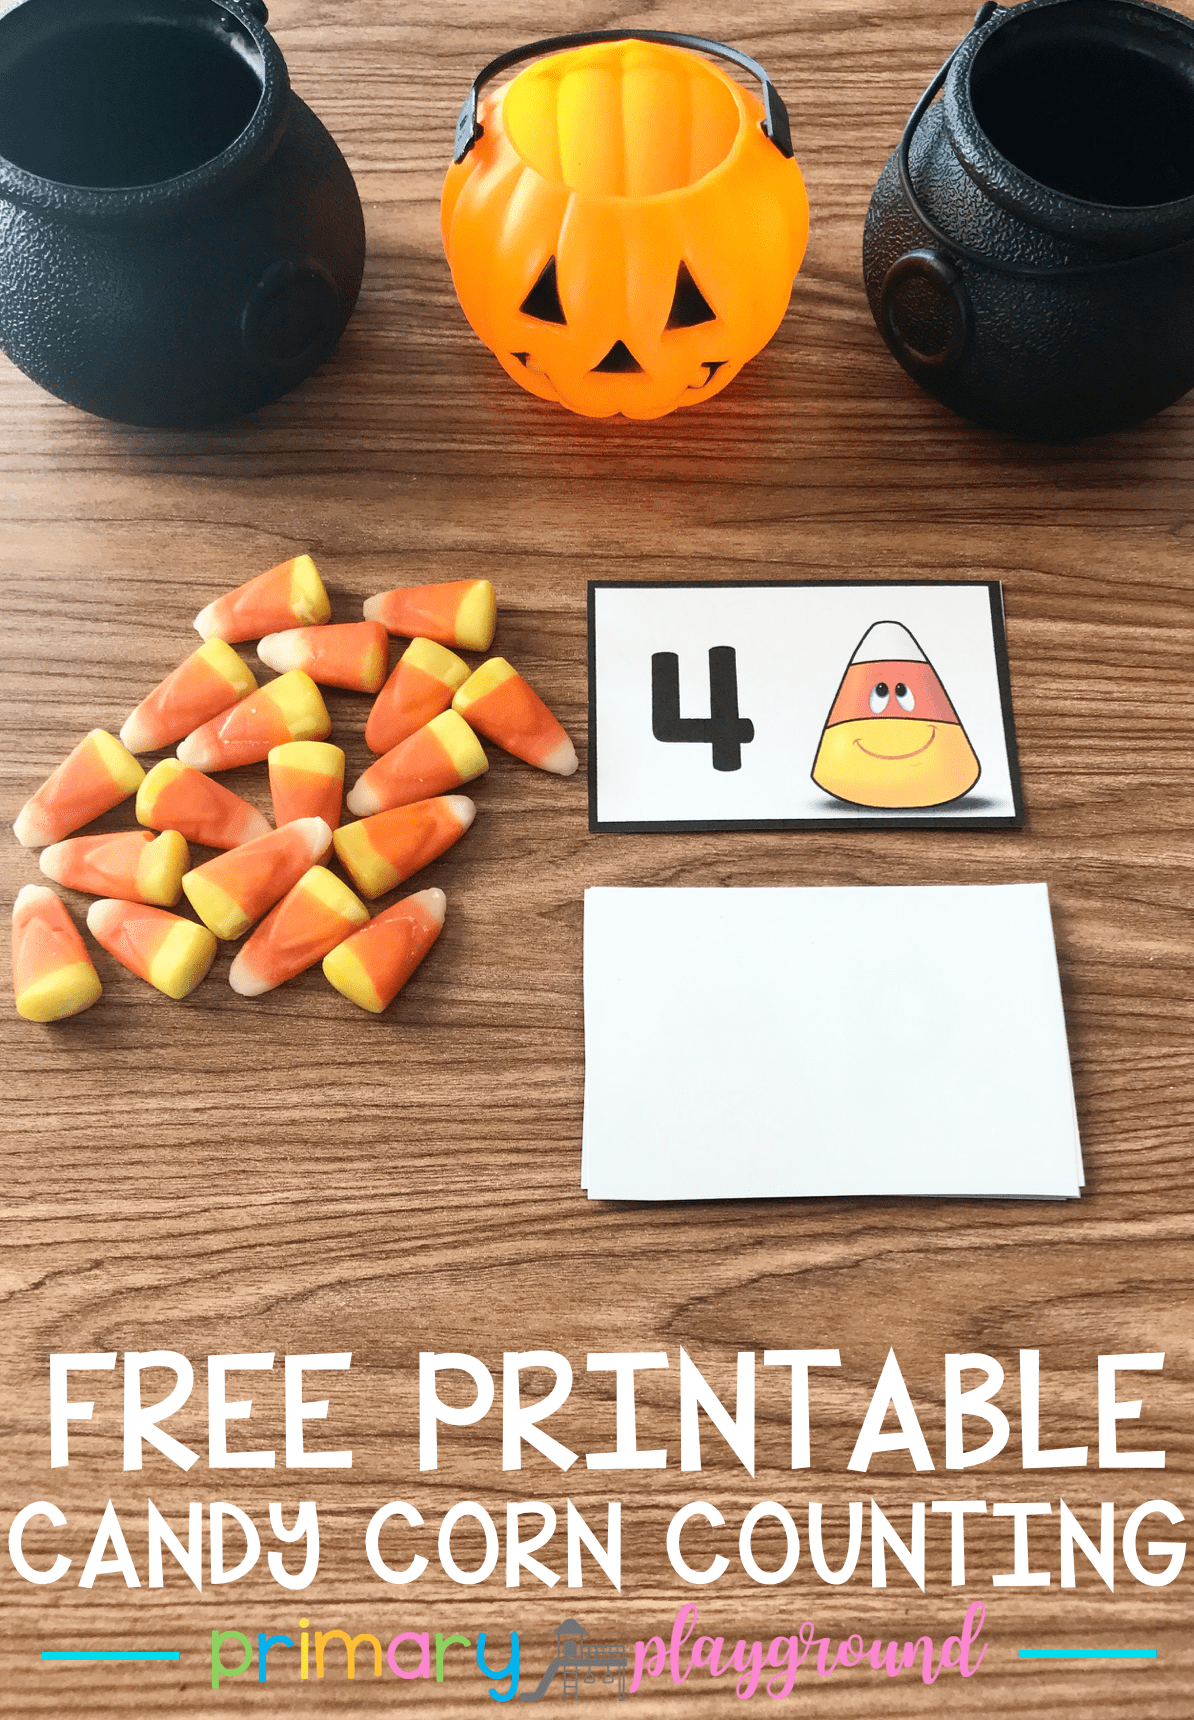 Free Printable Candy Corn Counting Cards